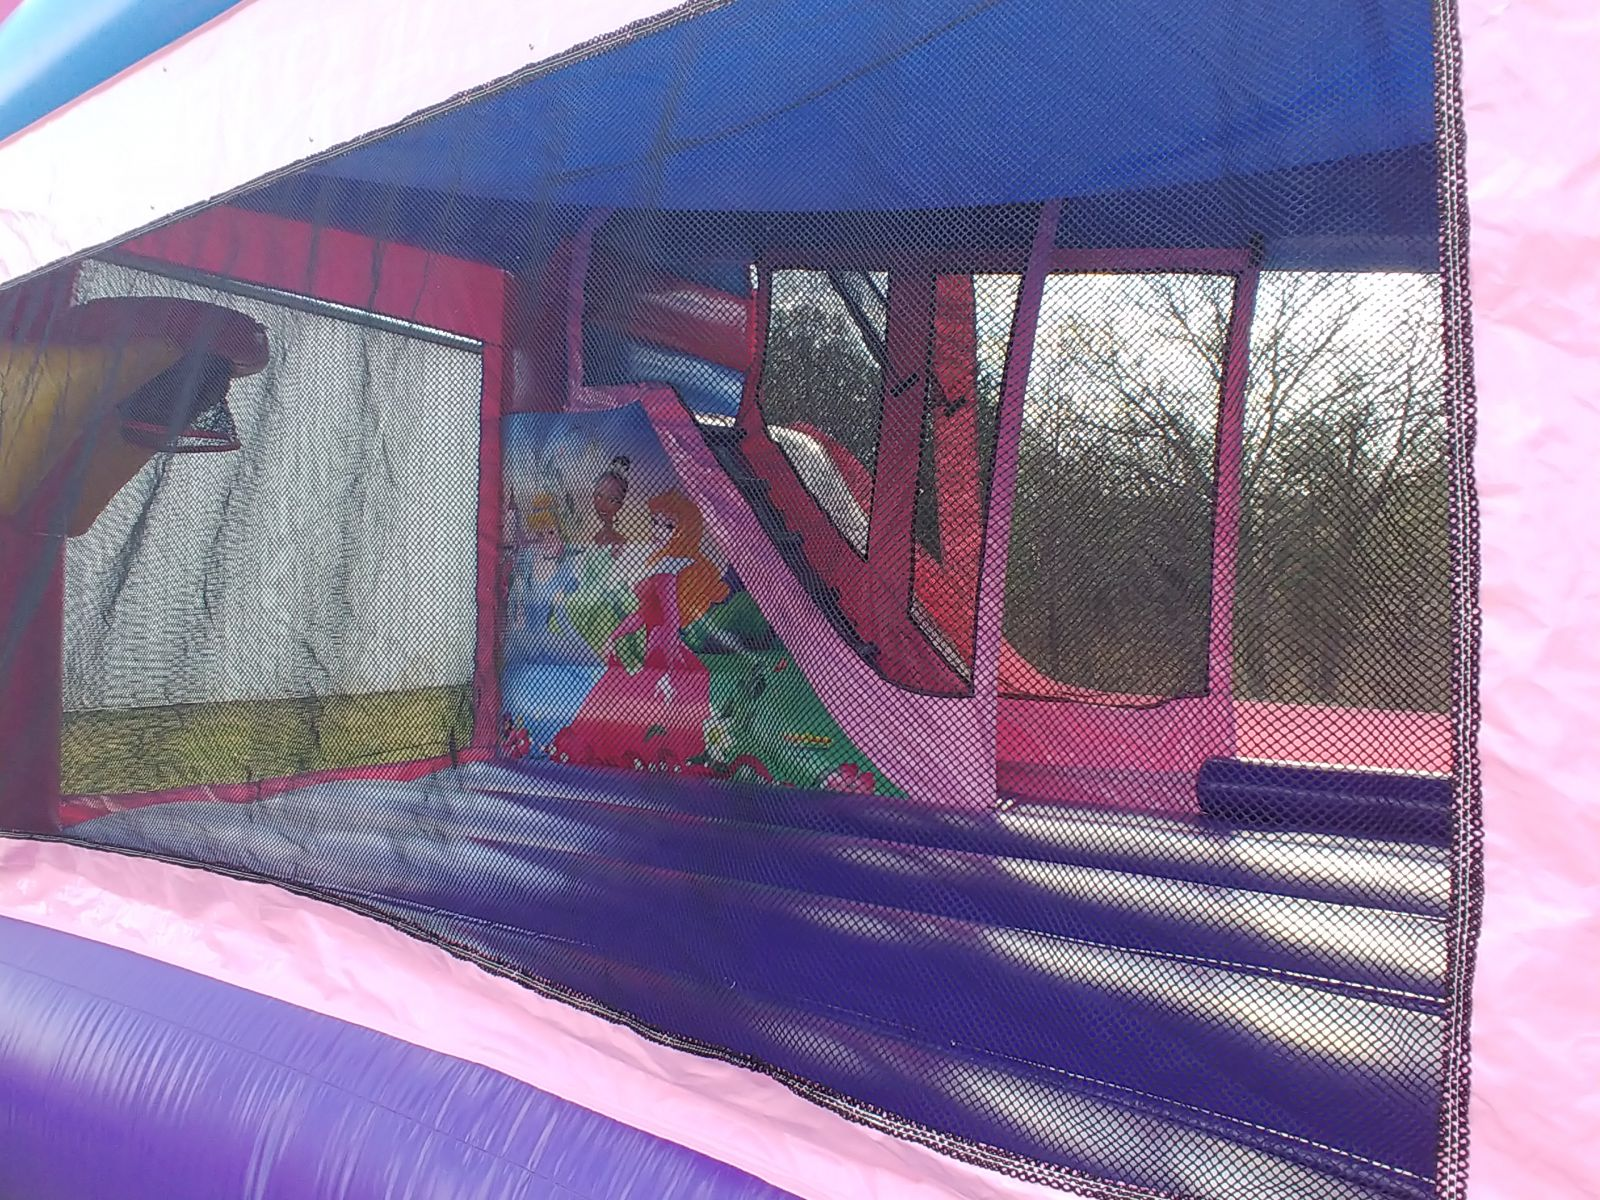 Disney Princess Combo interior view with basketball hoop and climbing wall with slide bounce house